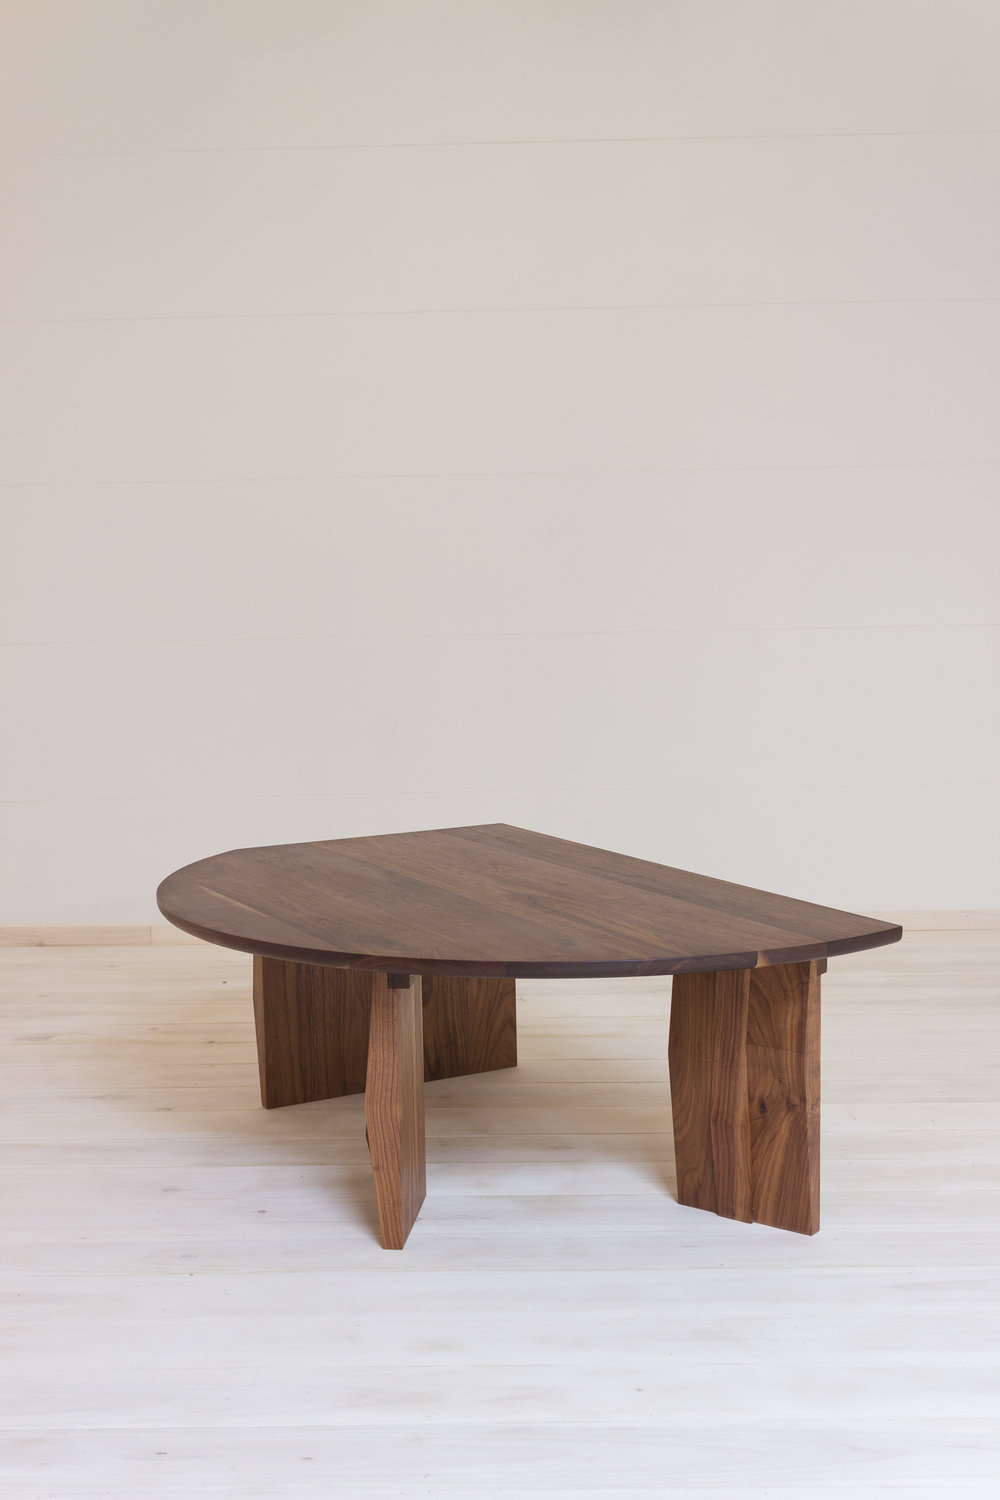 CoffeeTable_002.JPG